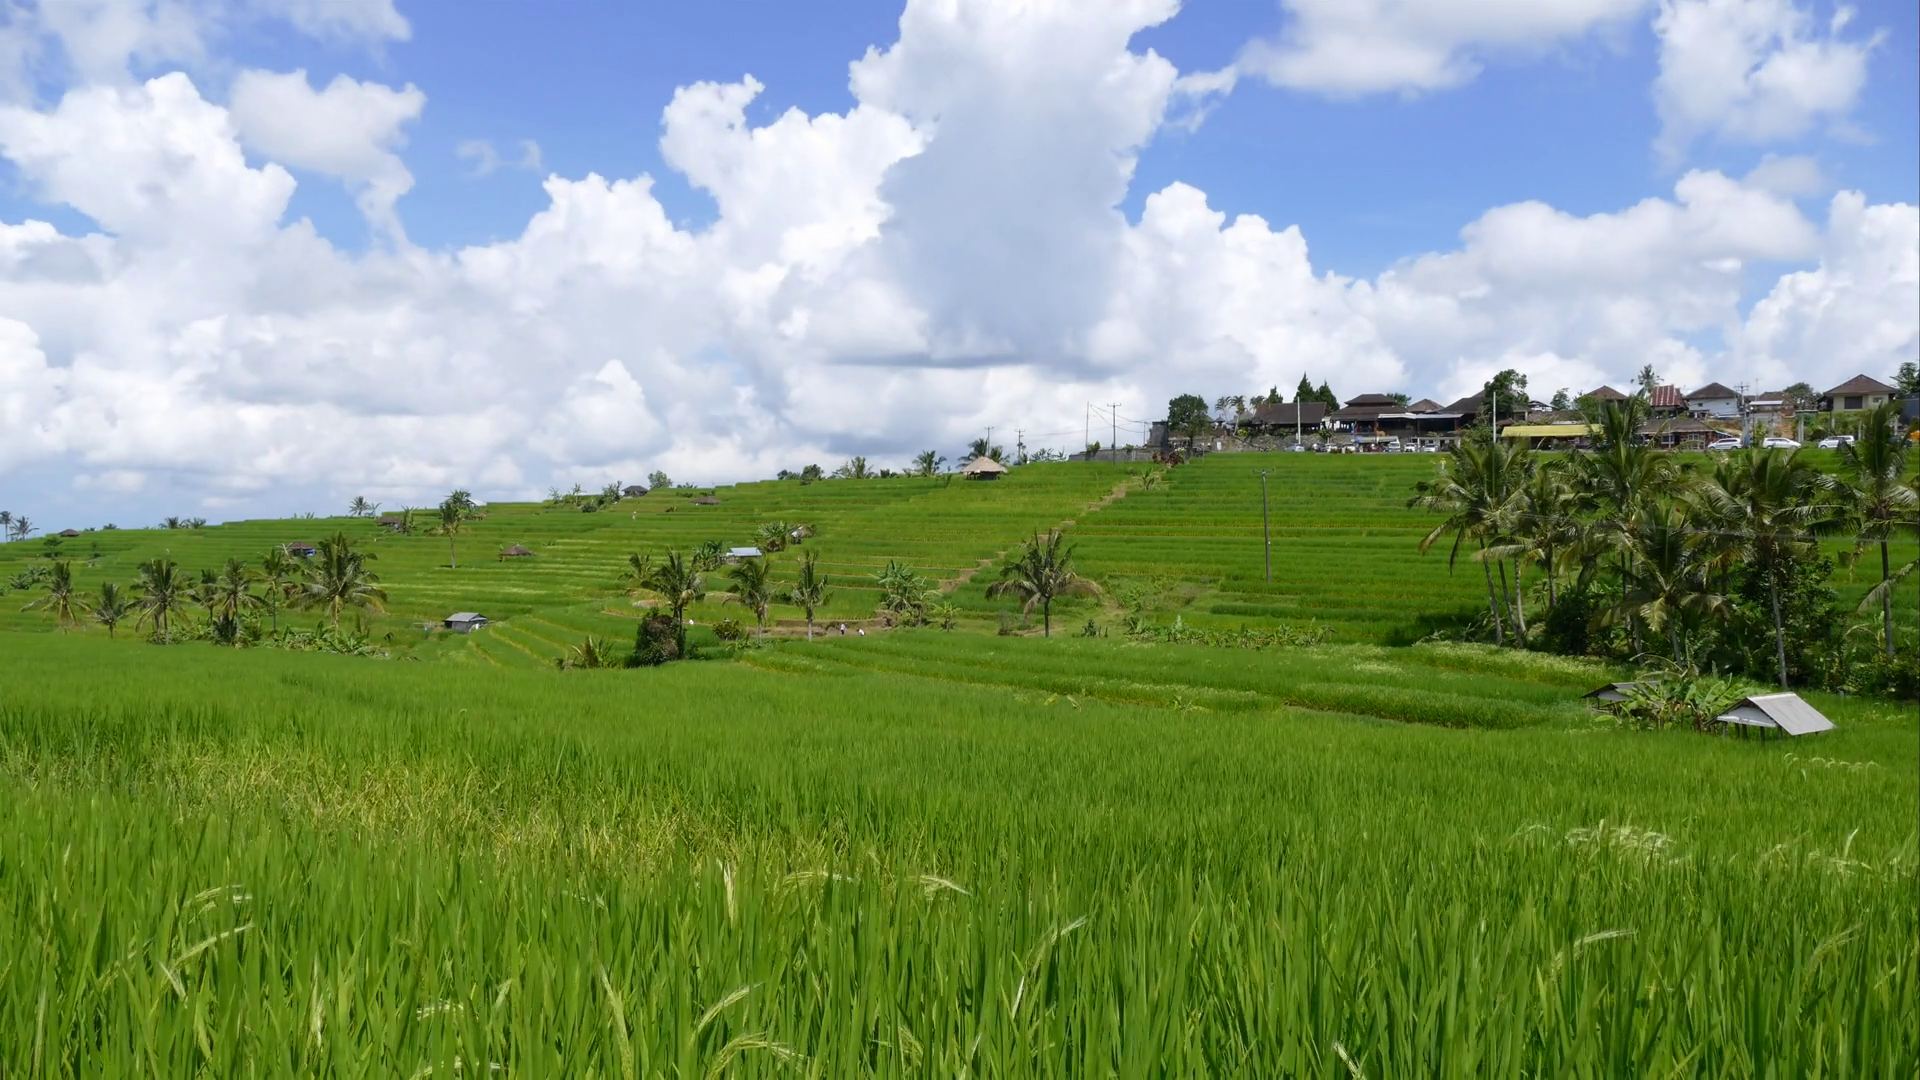 Rice field paddy landscape in